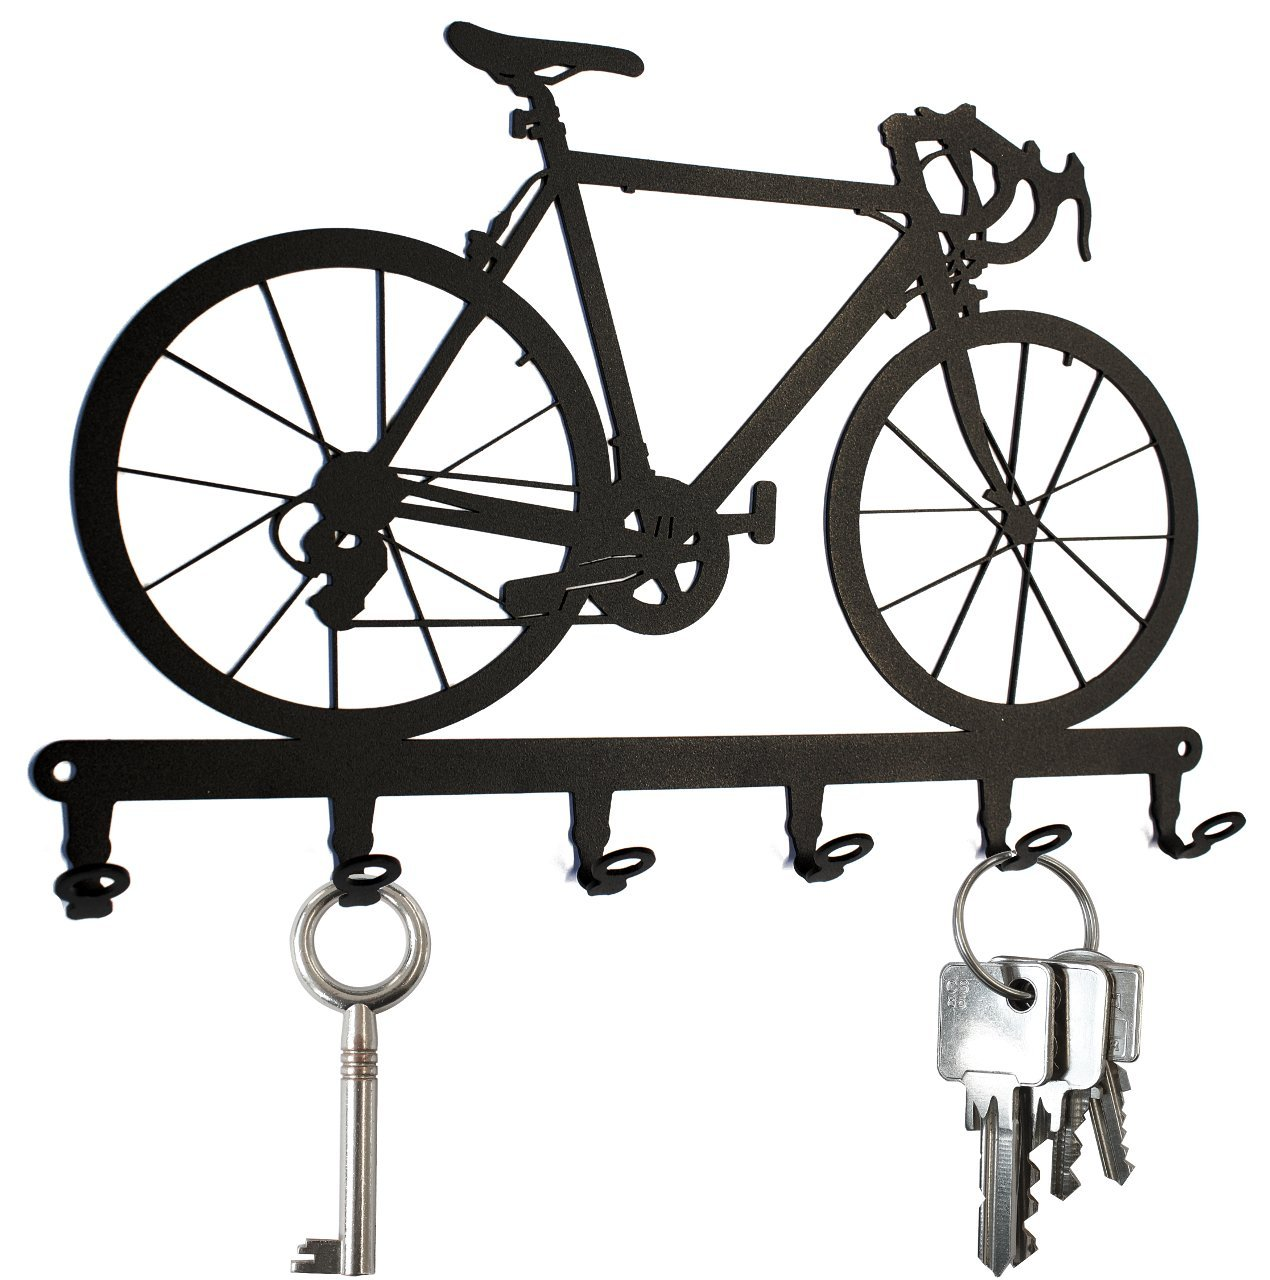 Key holder / hook Racing Bike - key hooks for wall, hanger - 6 hooks black metal (black) steelprint.de